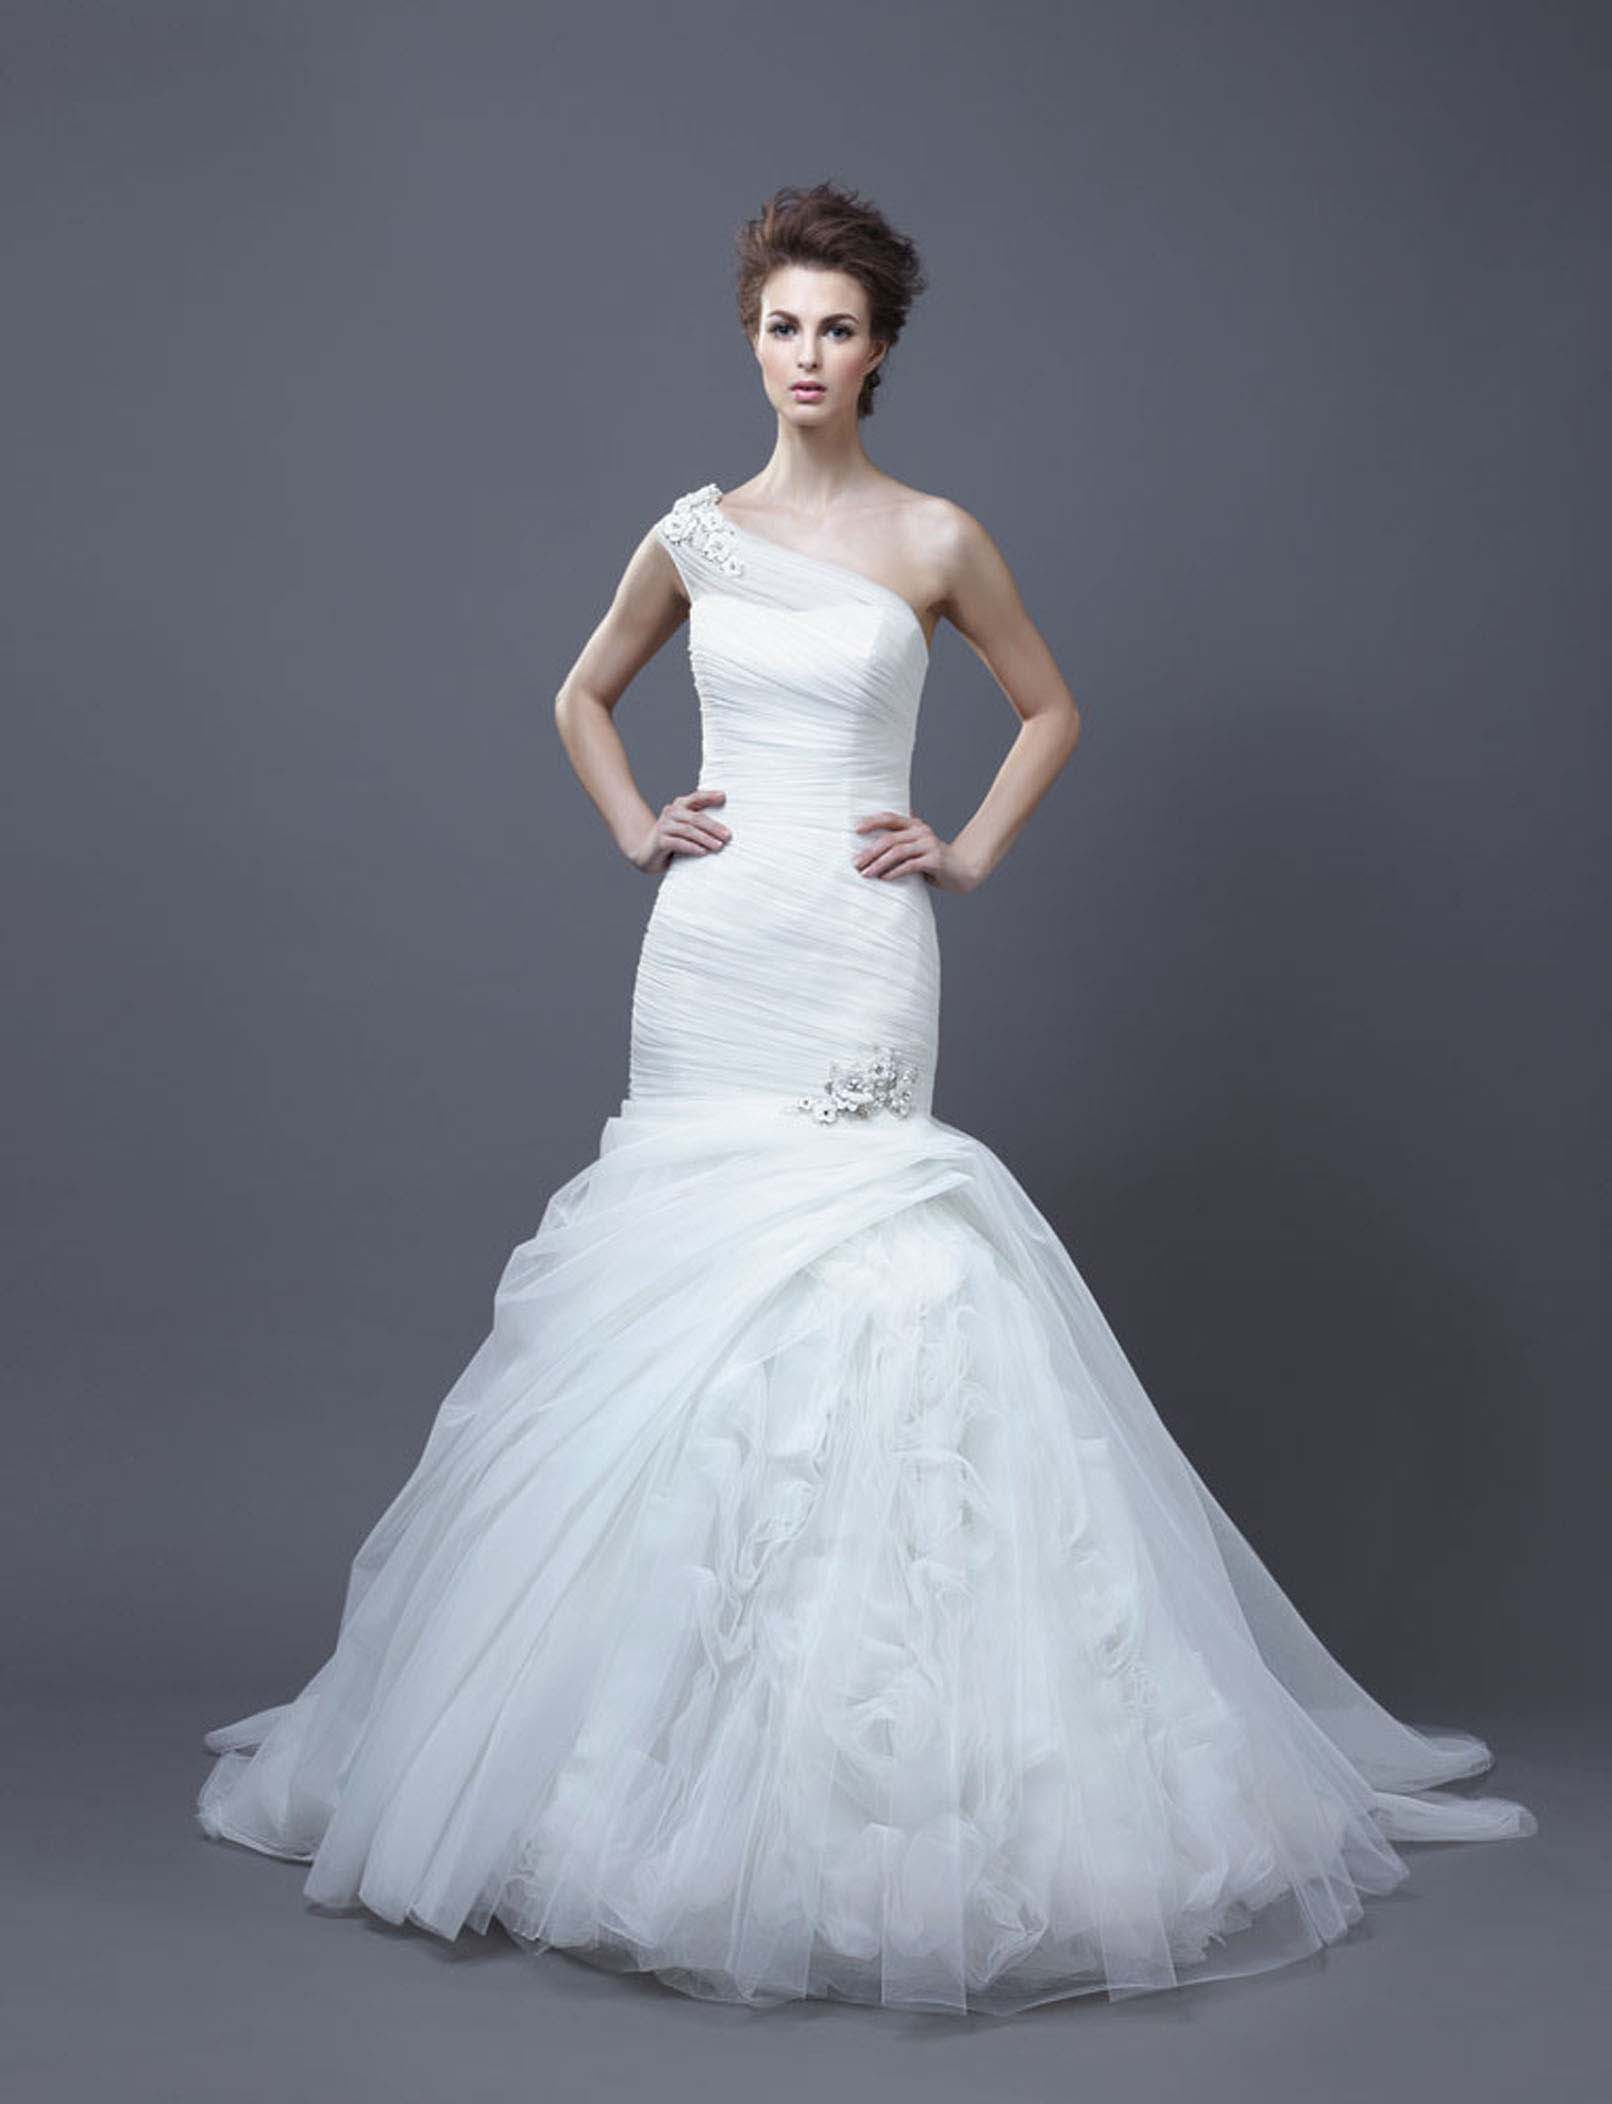 2013-wedding-dress-by-enzoani-bridal-hadara.original